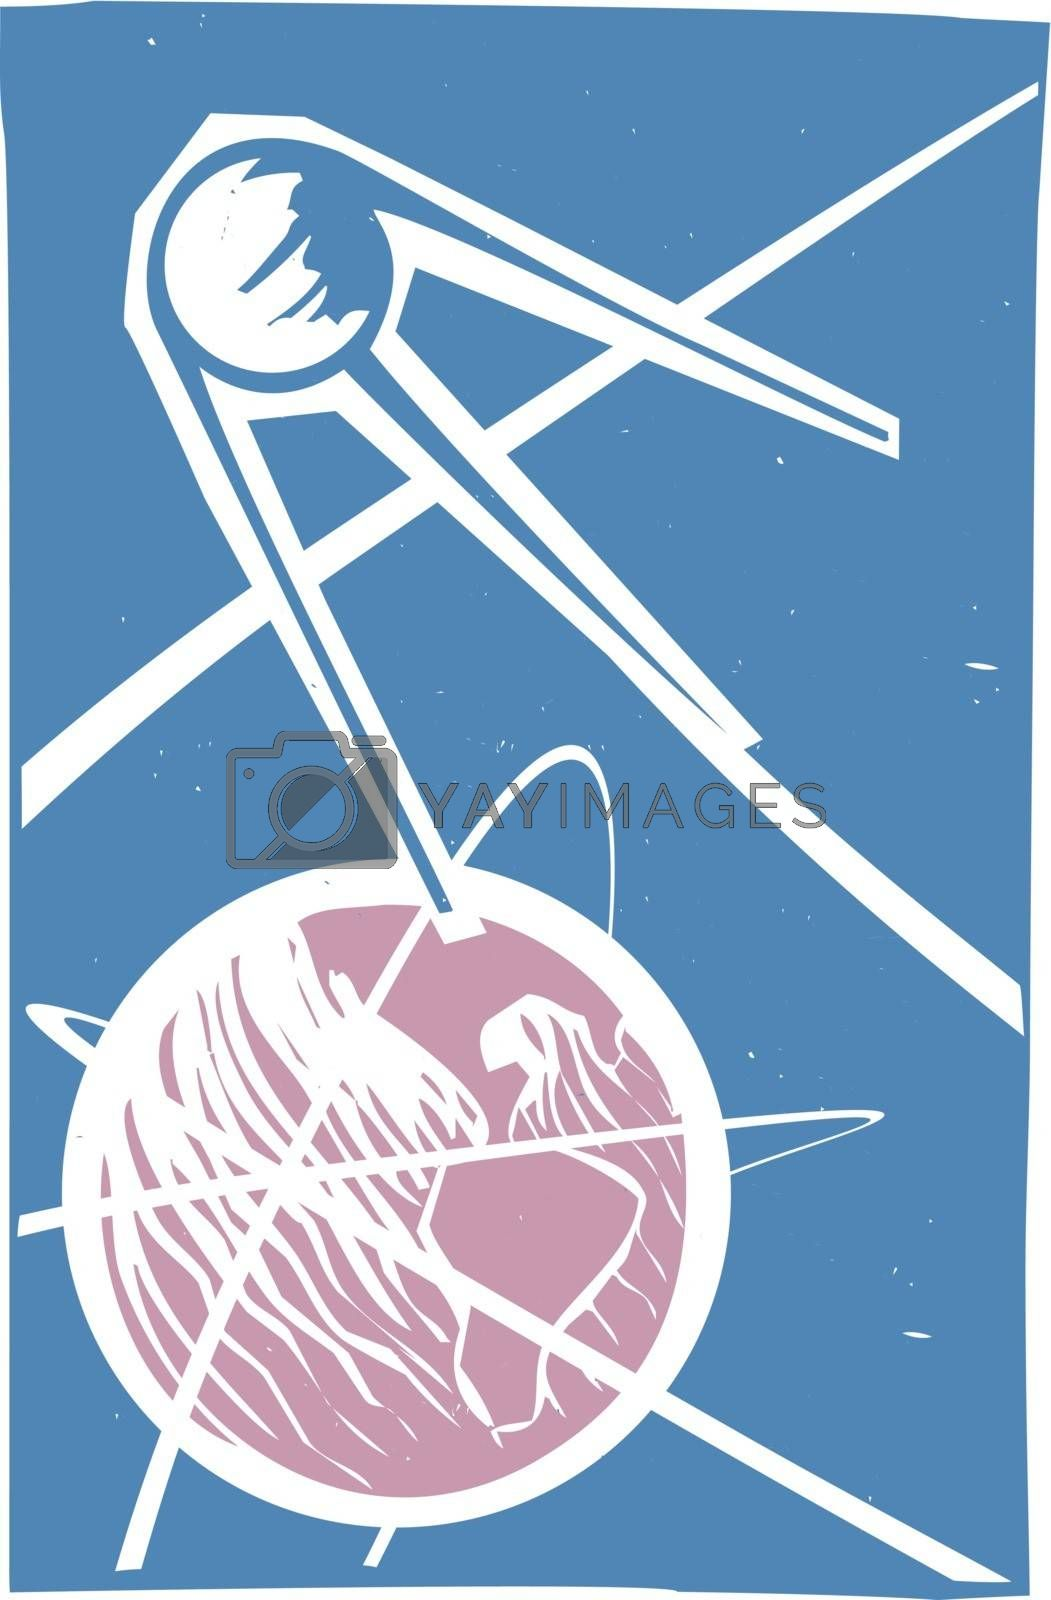 Soviet Poster style image of a Russian Sputnik satellite orbiting Earth.